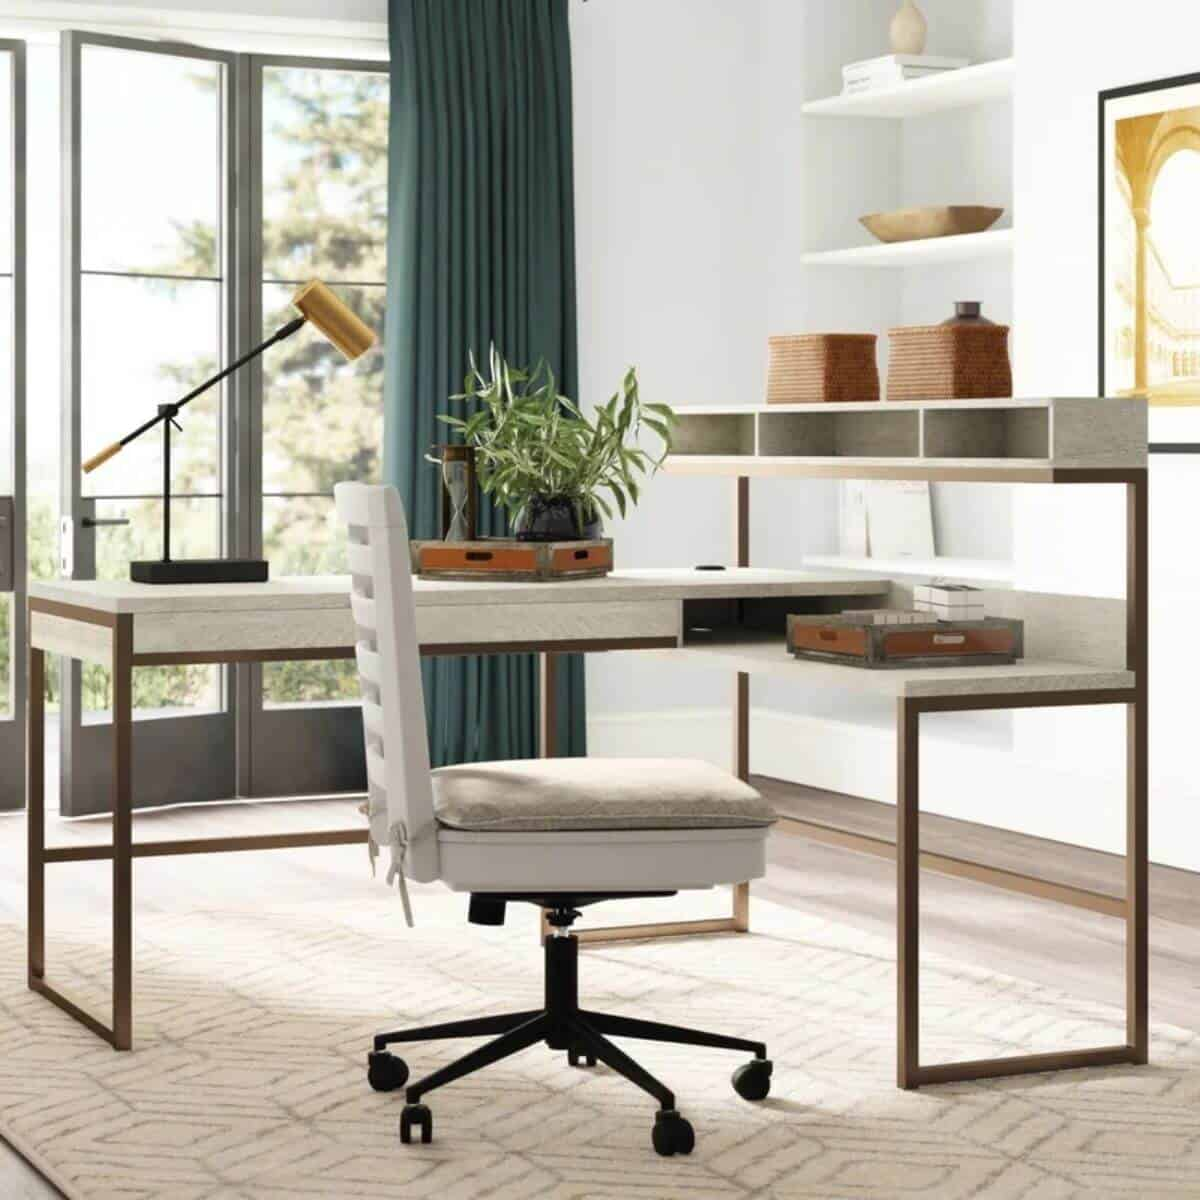 White L-shaped desk with metal frame in a room.